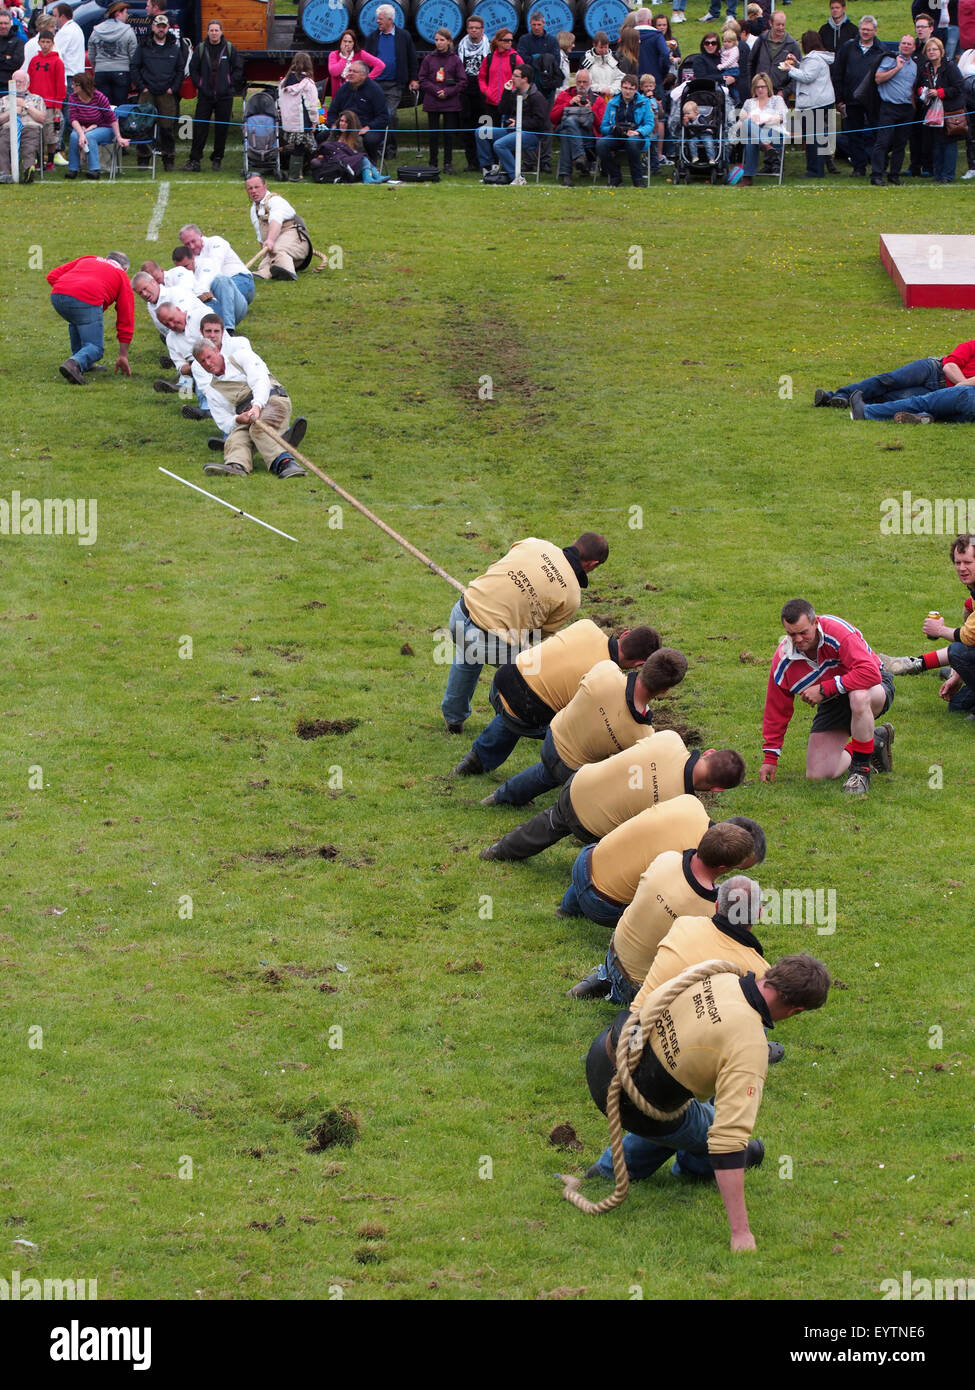 Dufftown, Scotland - July 25, 2015: Tug of War contest at a Scottish Highland Games event. Stock Photo